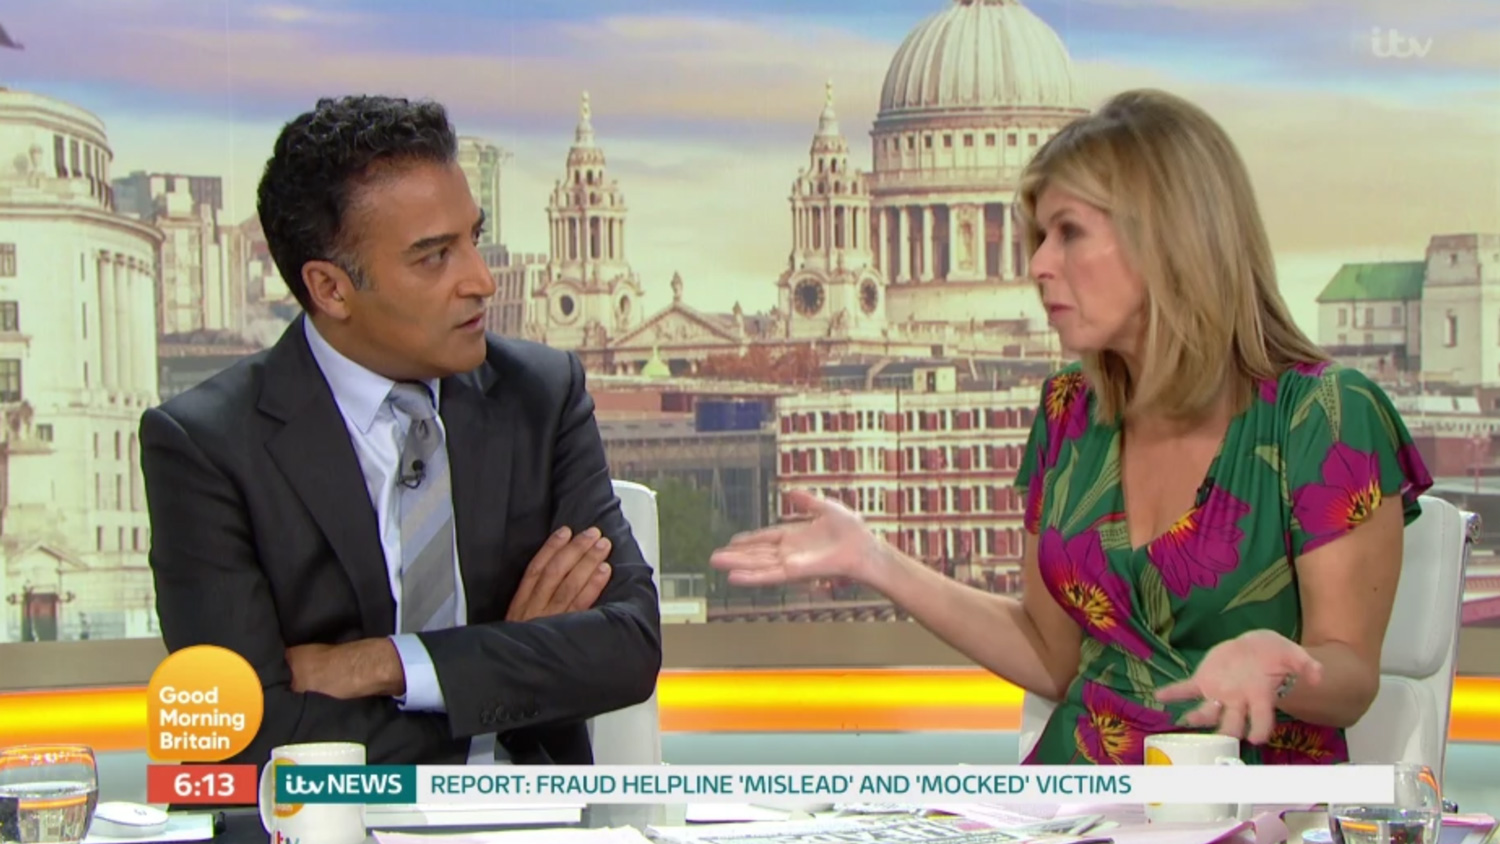 Good Morning Britain's Adil Ray goes on a heated rant